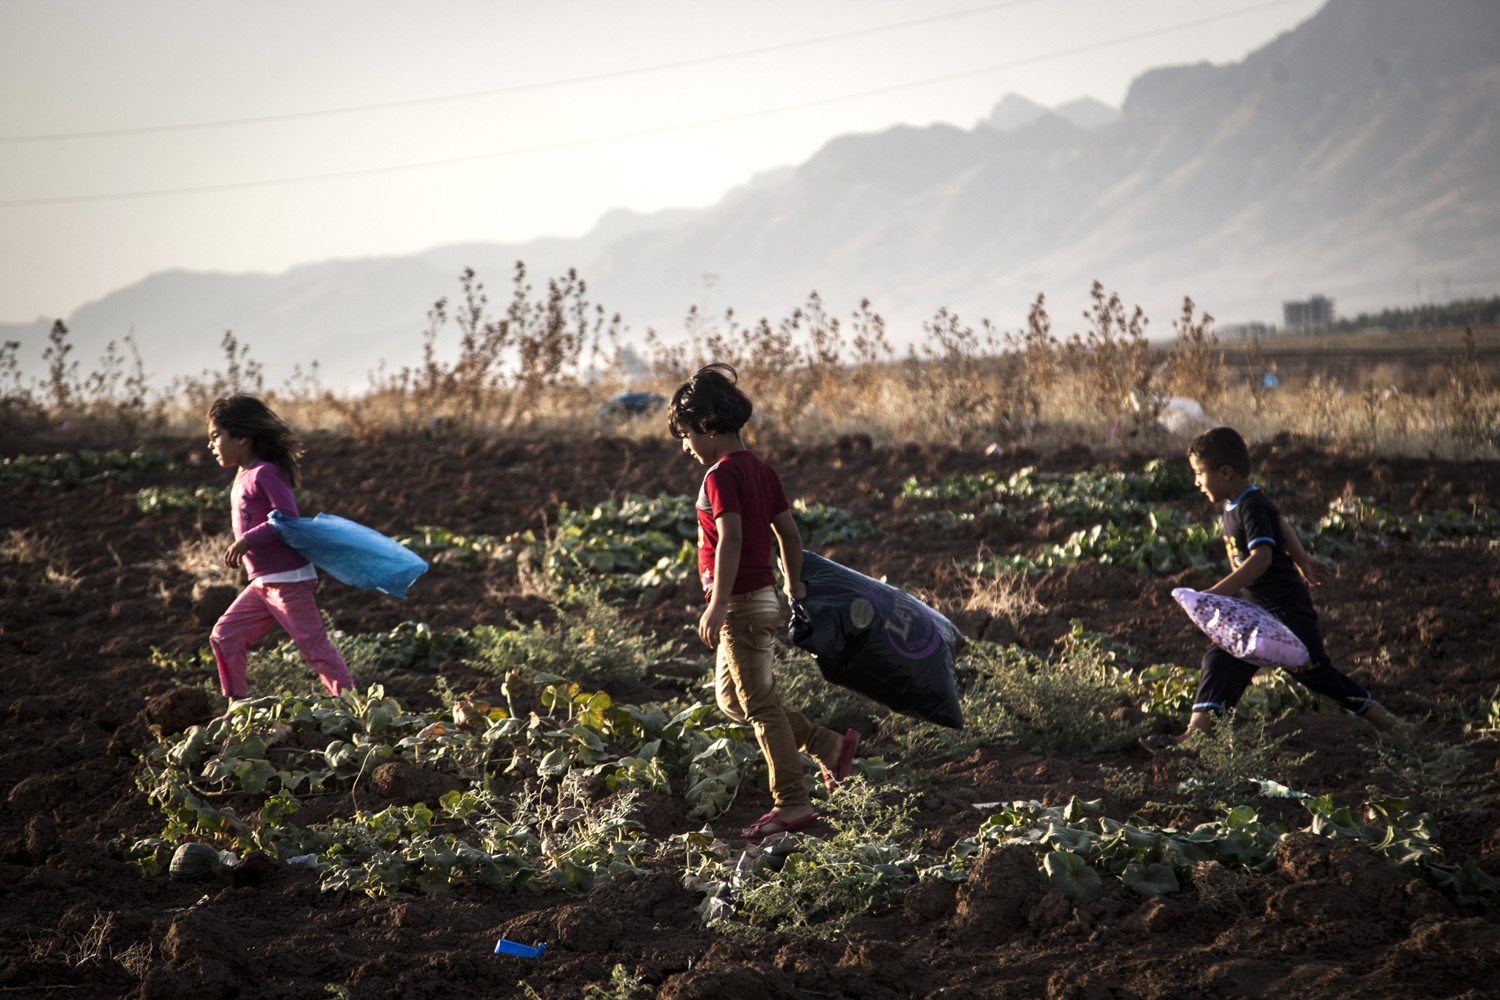 Aug. 16, 2014.  Children pick up melons  and bring them to their home after tens of thousand of Yazidis escaped from their ancient homeland of Sinjar and other villages after the attacks and mass executions  of  Islamic State (ISIS) militants who regard the ethnic minority as devil worshippers who must embrace their radical version of Islam or die.